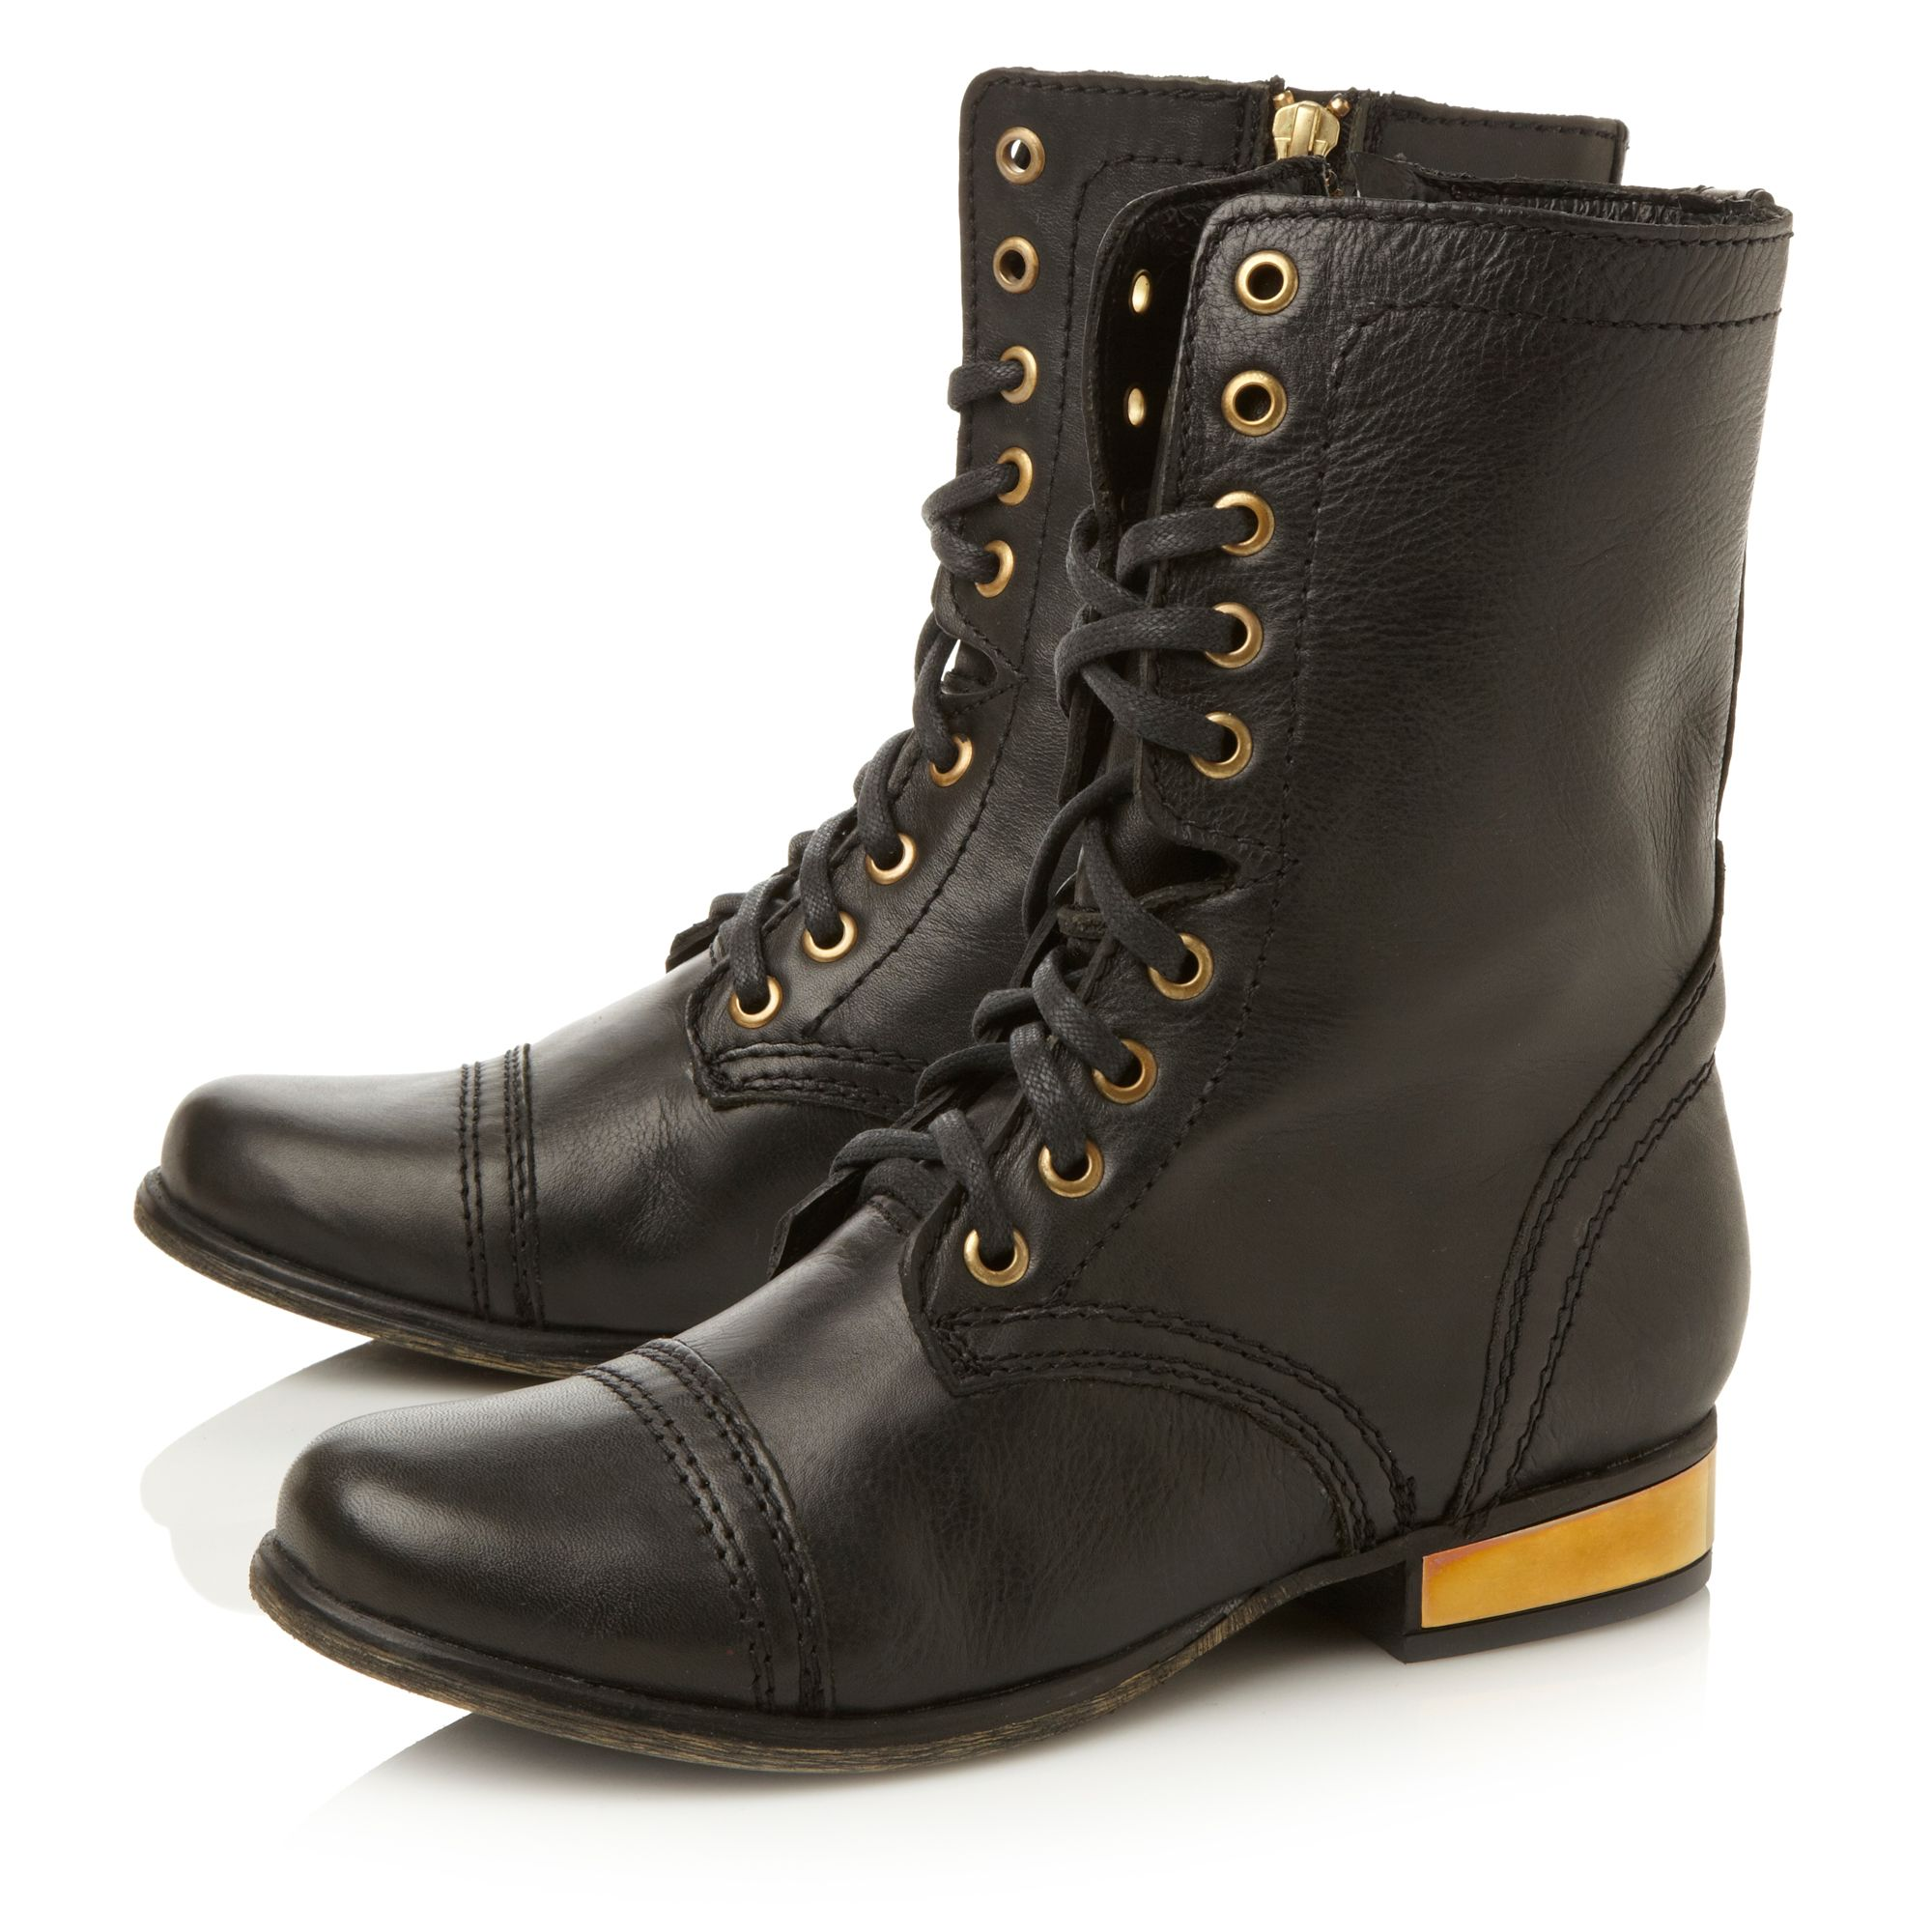 Steve Madden Leather Troopale Sm Metal Detail Worker Boots in Black Leather (Black)